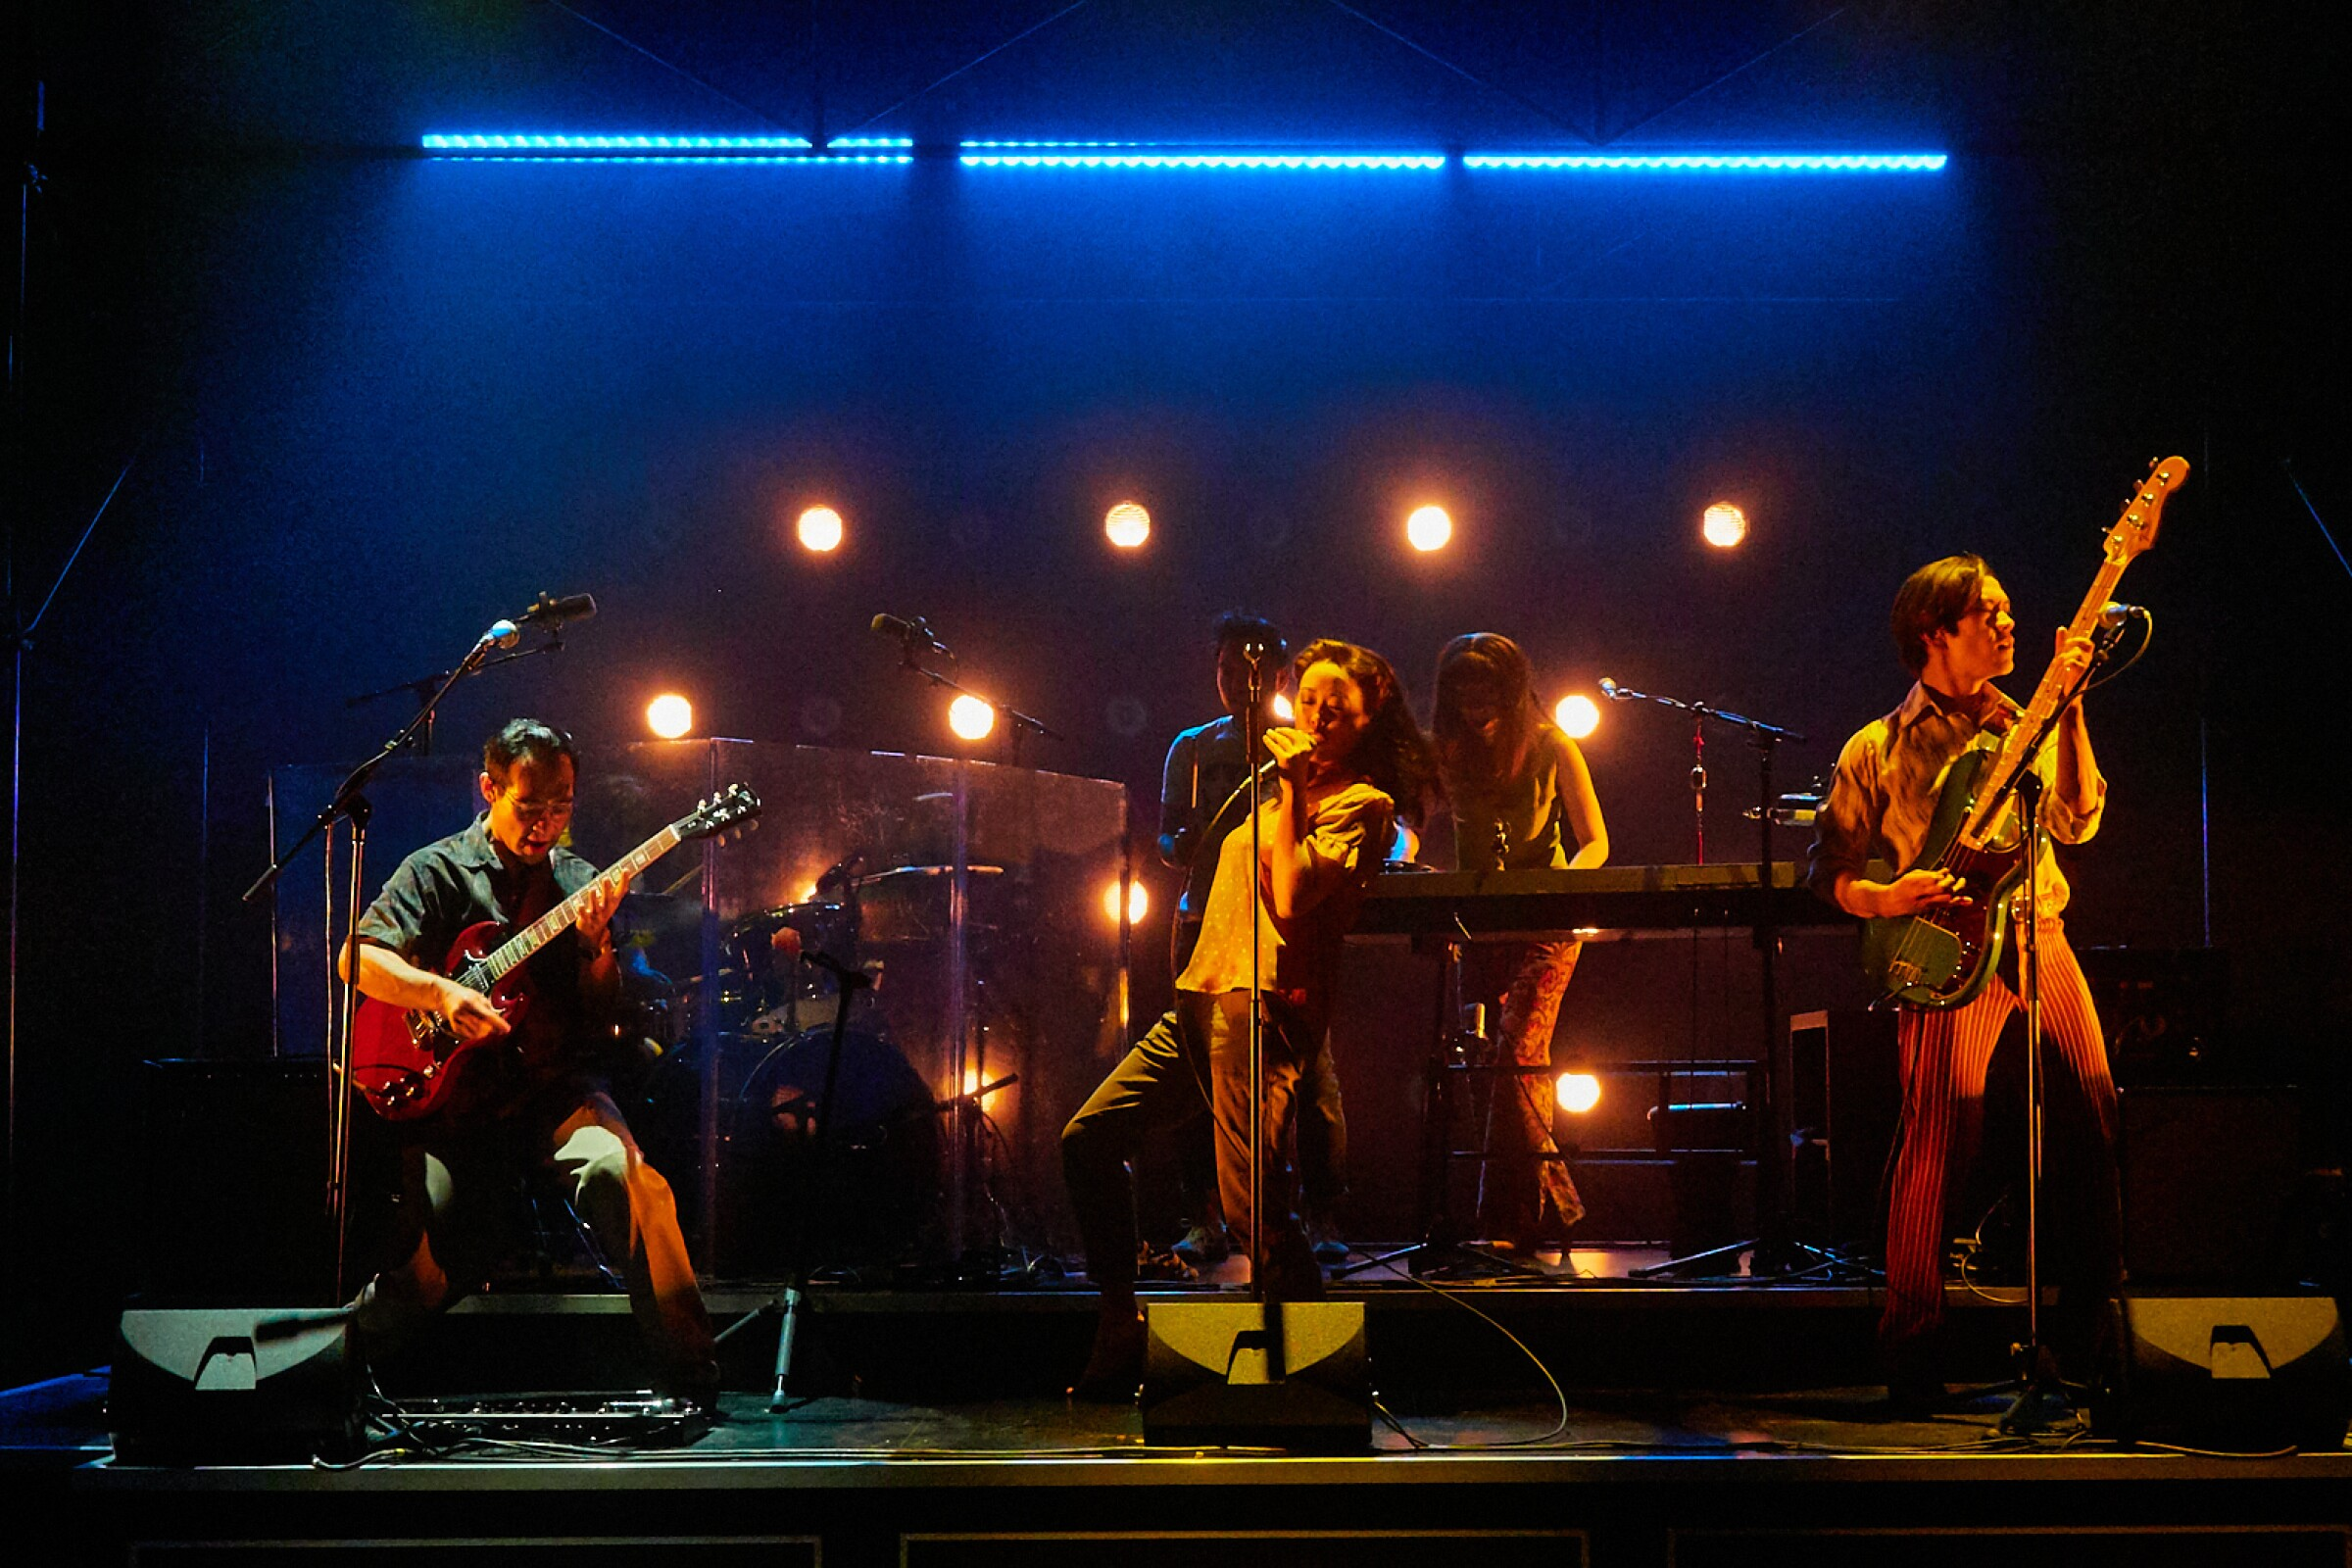 """Cambodian Rock Band"" brought the playwriting sensation and University of California San Diego grad back to town for a powerful La Jolla Playhouse staging of the music-propelled piece."